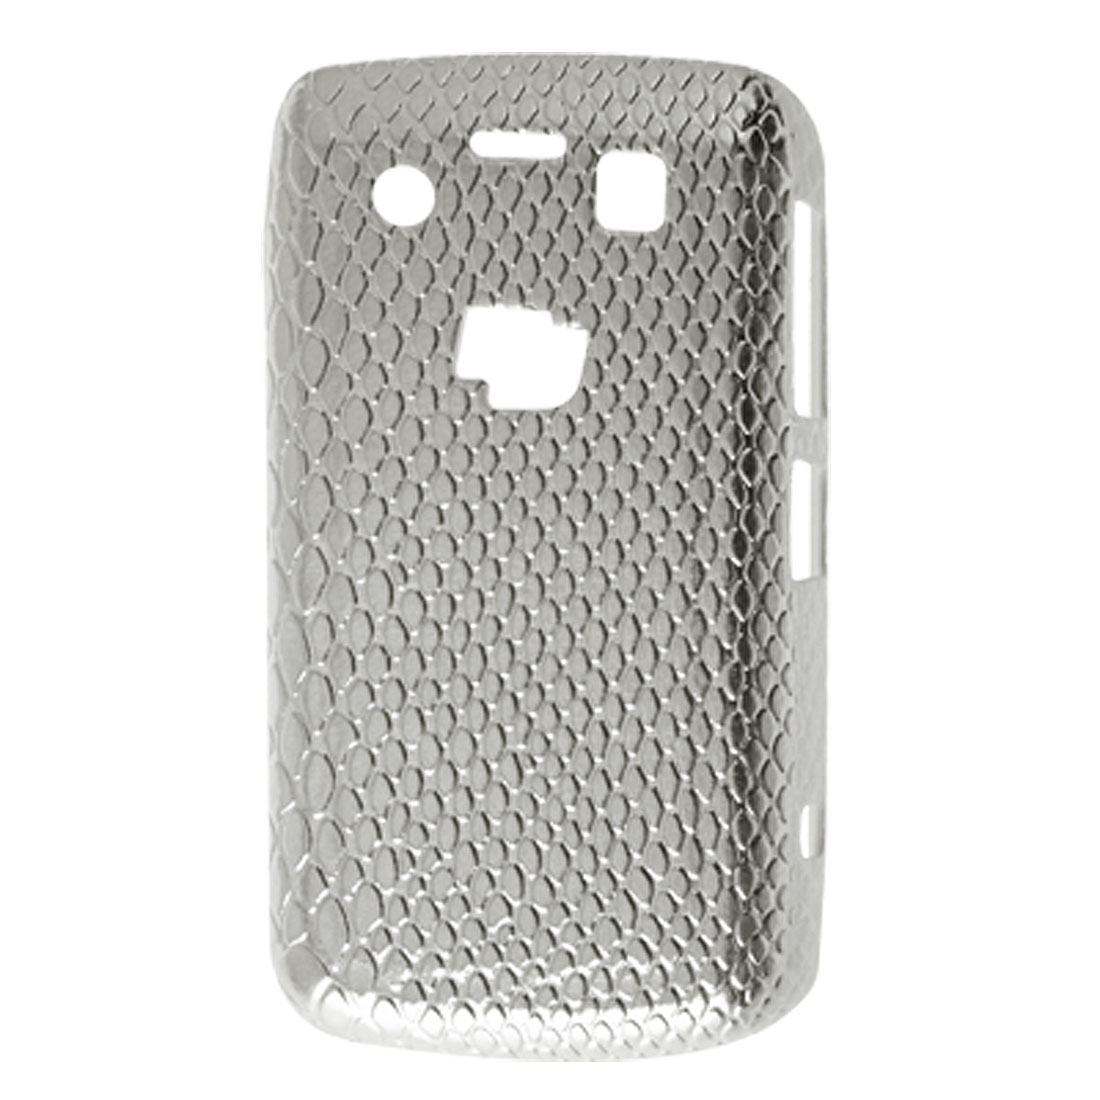 Hard Plastic Faux Leather Coated Snake Print Case for Blackberry 9700 Silver Tone